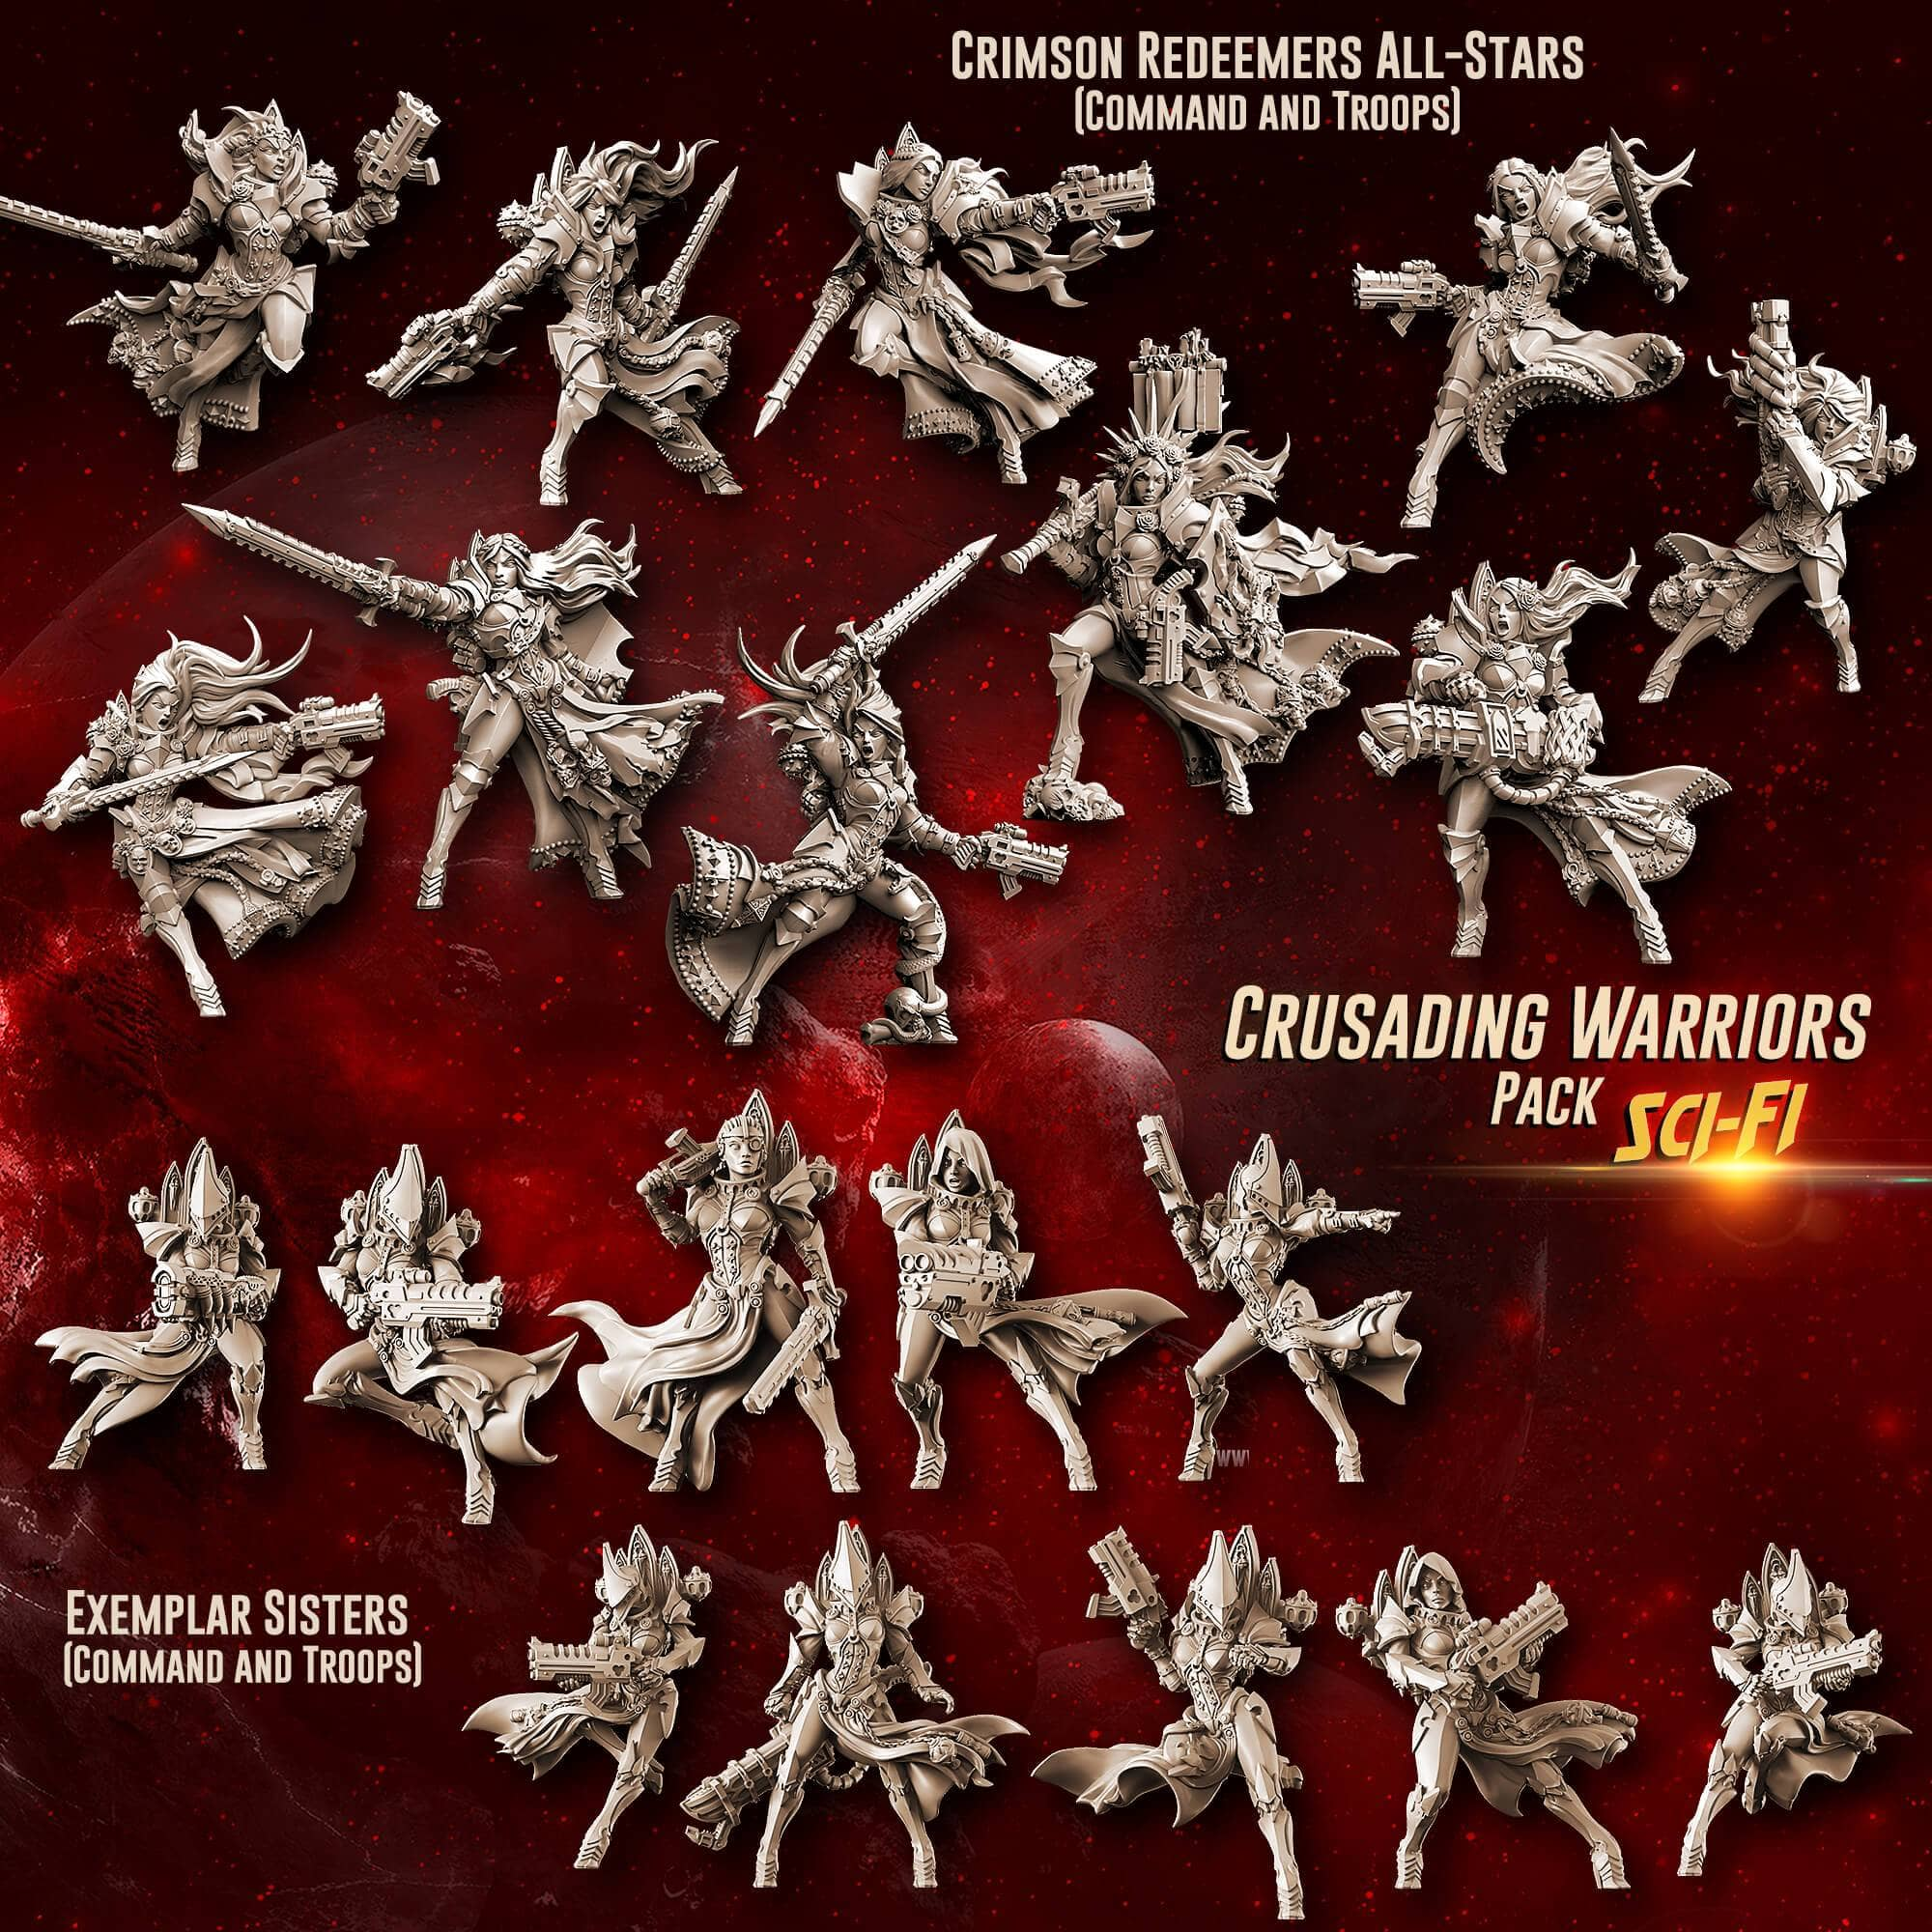 Crusading Warriors Pack (SoEM -SF)